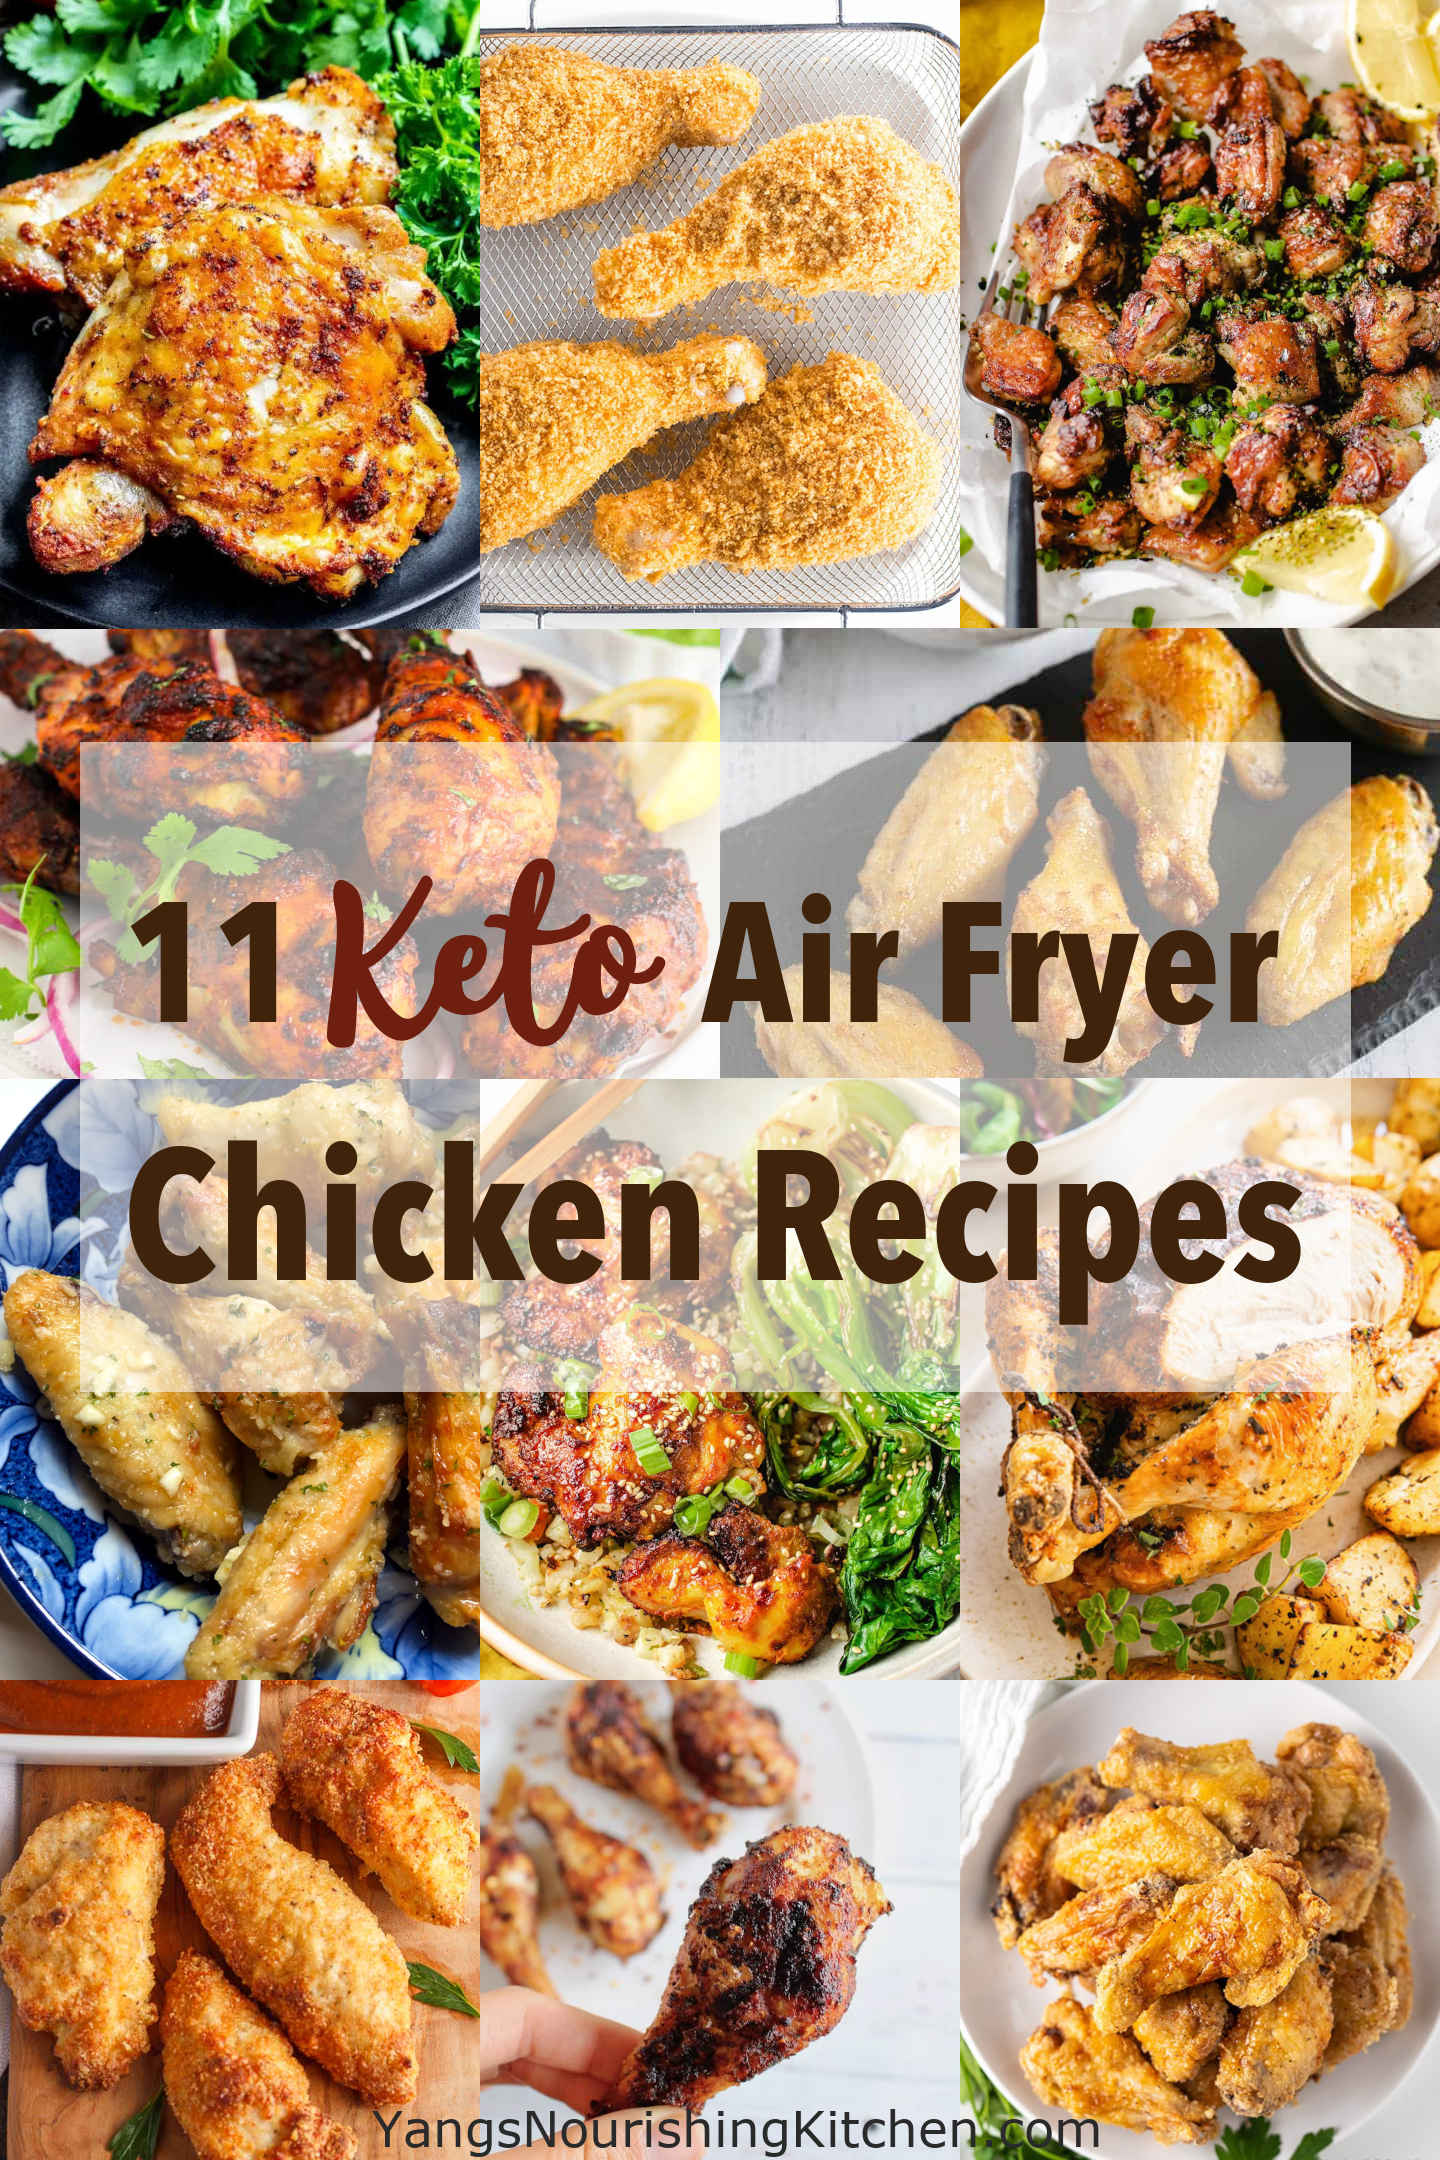 collage of 11 keto air fryer chicken recipes